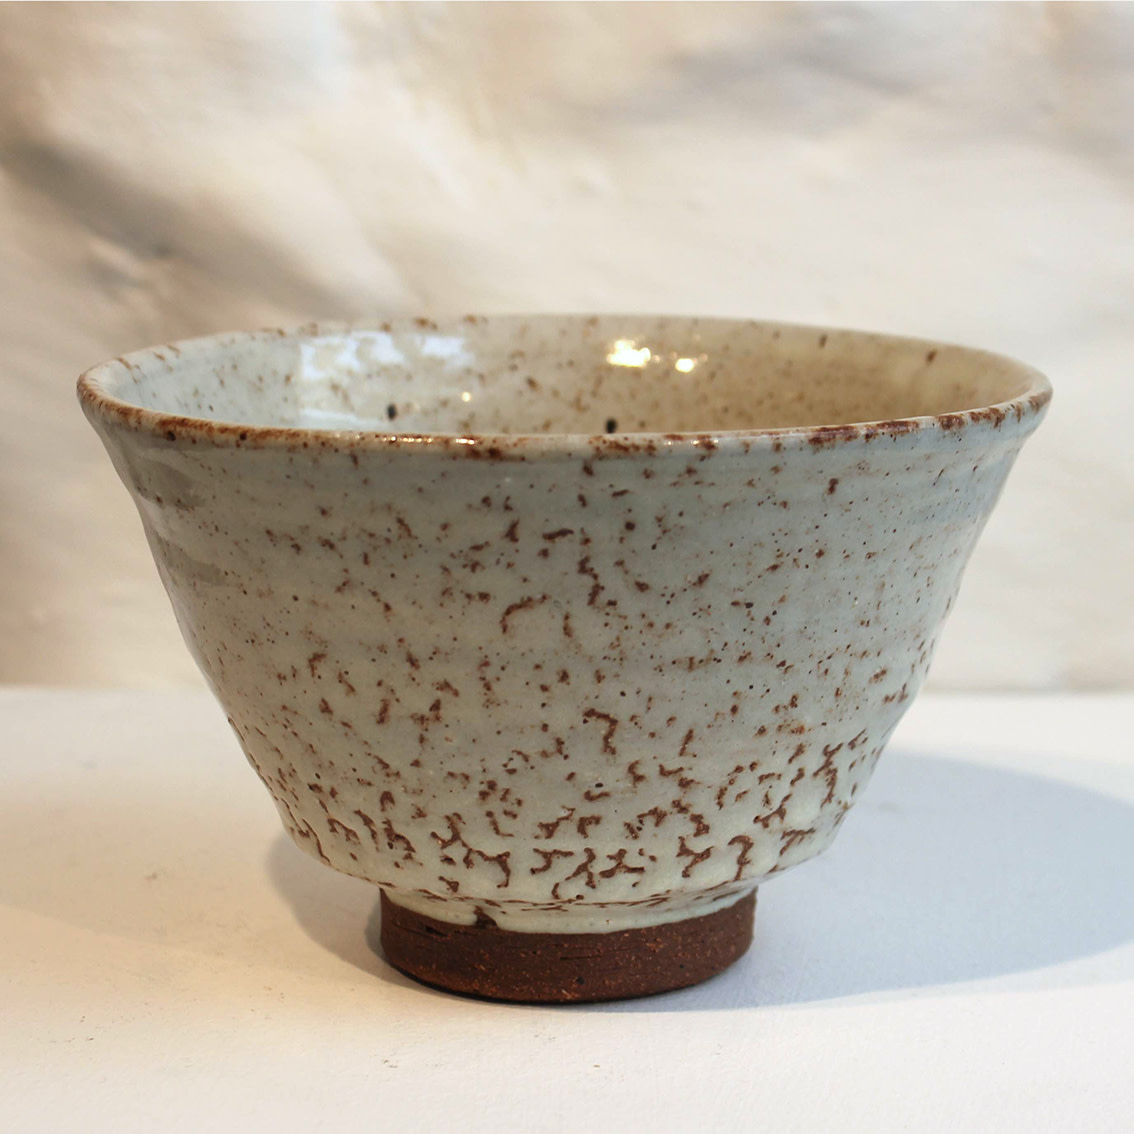 "<span class=""link fancybox-details-link""><a href=""/artists/200-matthew-tyas/works/5462-matthew-tyas-tenmoku-ash-chawan-bowl-2018/"">View Detail Page</a></span><div class=""artist""><strong>Matthew Tyas</strong></div> <div class=""title""><em>Tenmoku Ash Chawan Bowl</em>, 2018</div> <div class=""signed_and_dated"">stamped by the artist</div> <div class=""medium"">glazed thrown stoneware</div><div class=""copyright_line"">Copyright The Artist</div>"